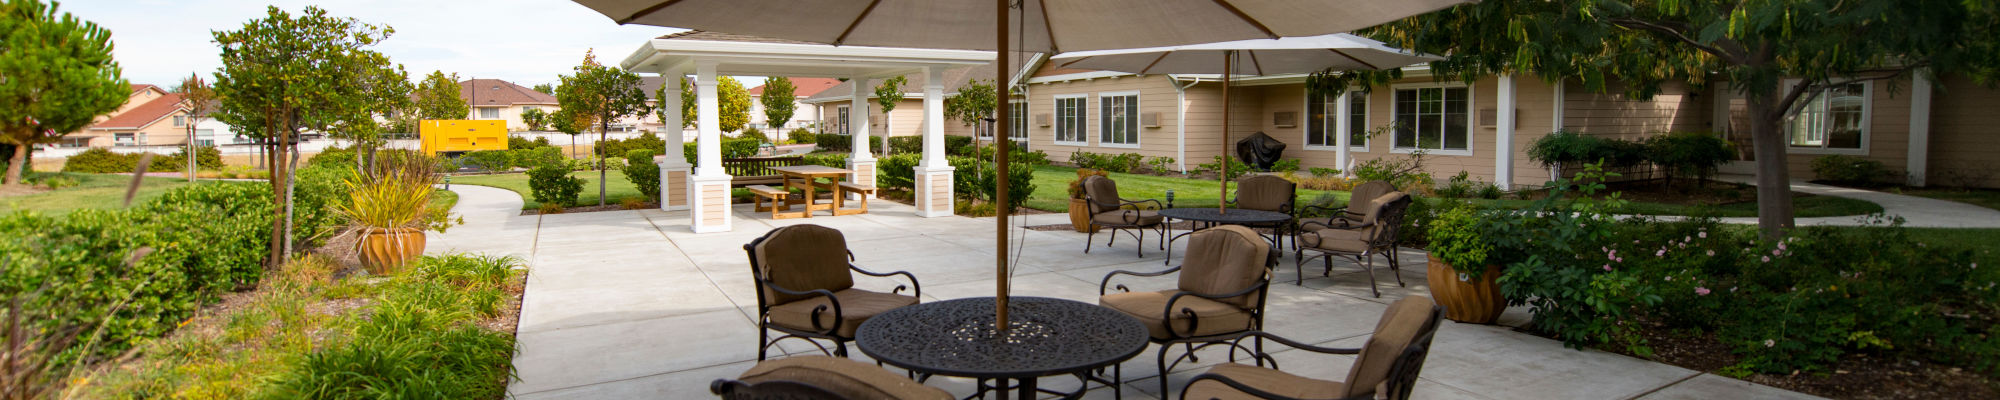 Request info at The Commons at Dallas Ranch in Antioch, California